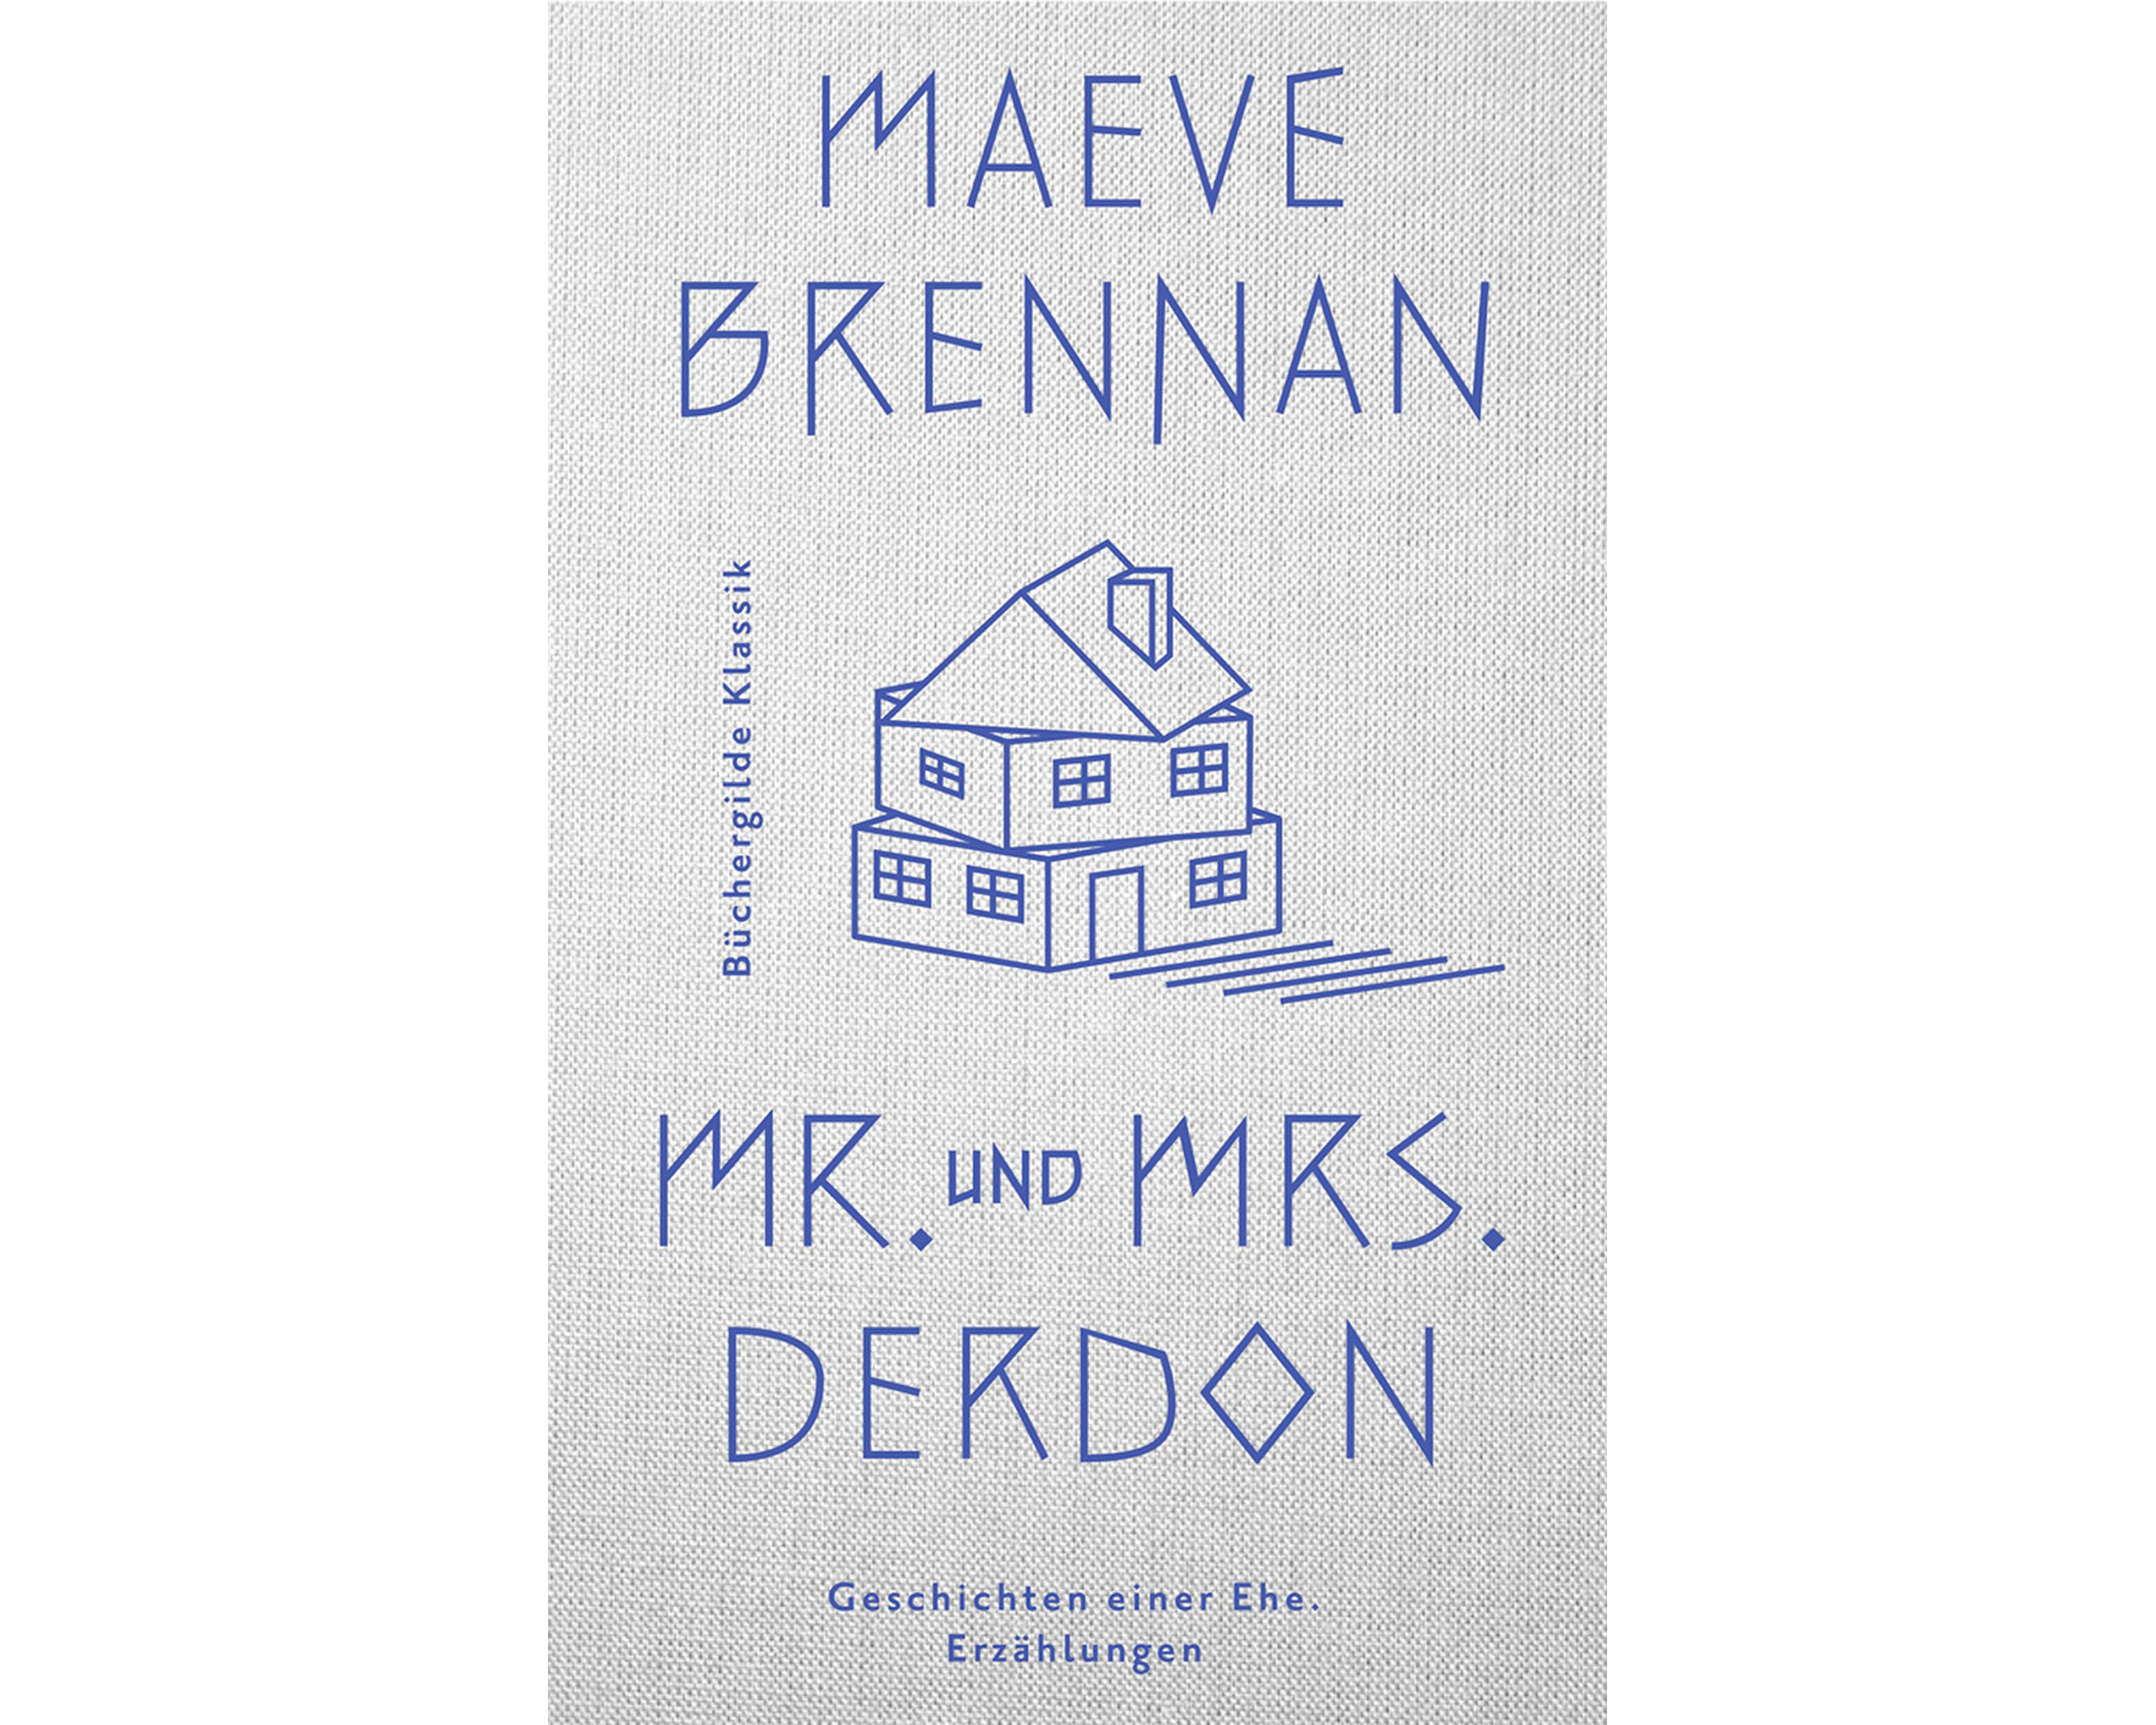 Mr. und Mrs. Derdon